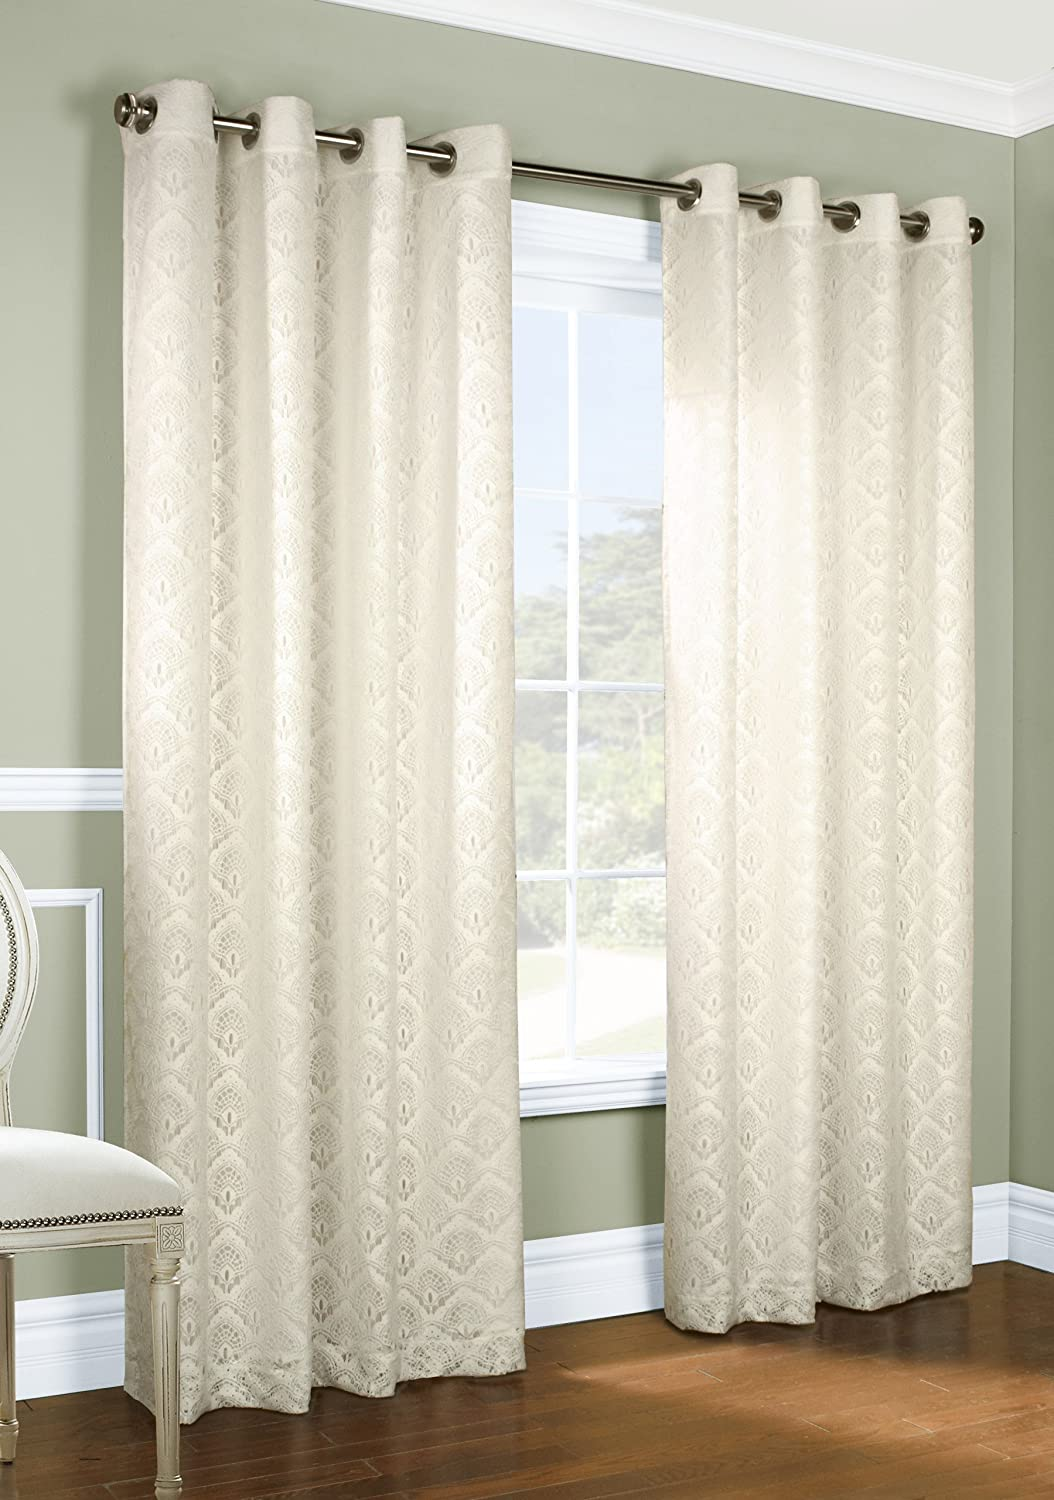 gold home ii string uk decor panels ukappealing lace appealing curtains panel your sorrento improvement window apply cotton soro to curtain designs